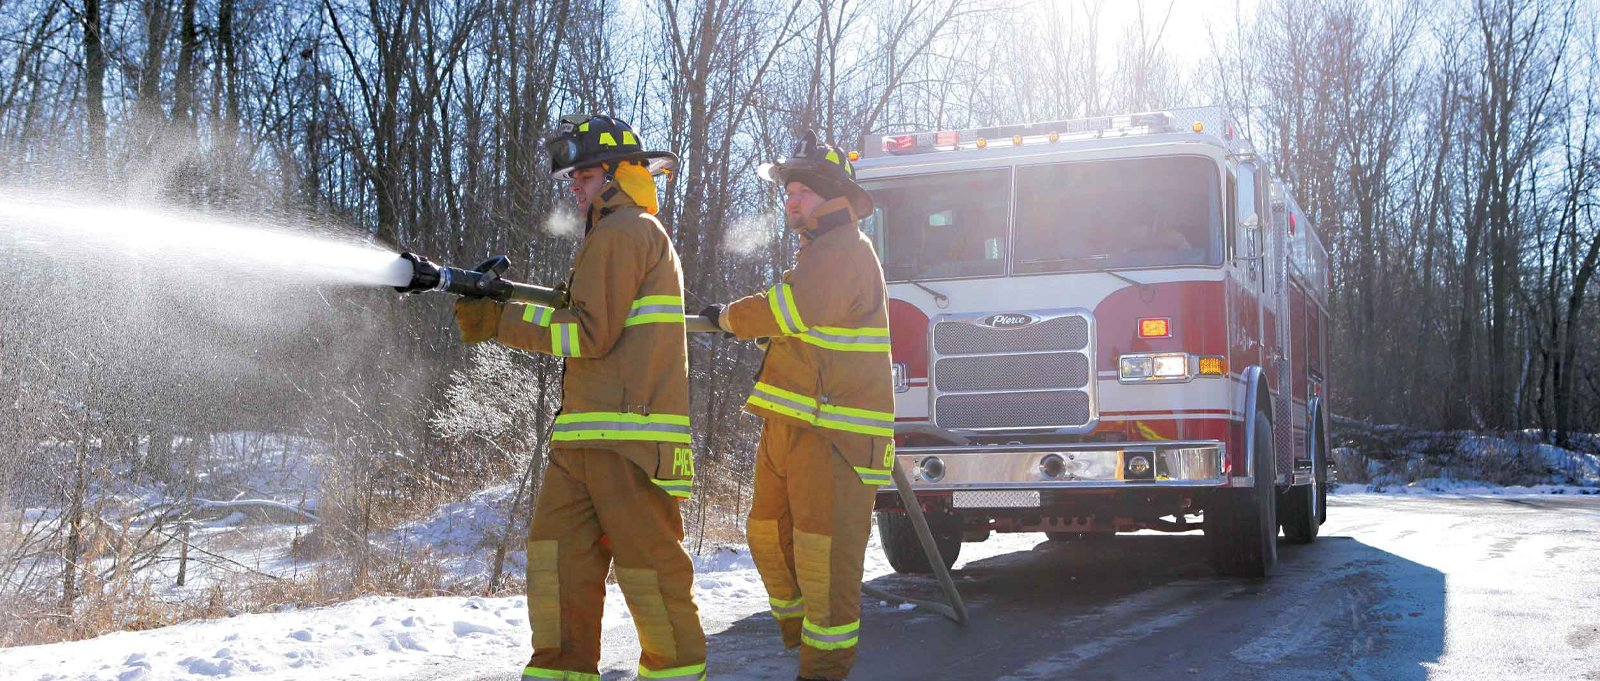 Firefighters using the pump and roll feature on the PIC apparatus. Carrying a fire hose and spraying water out in winter conditions